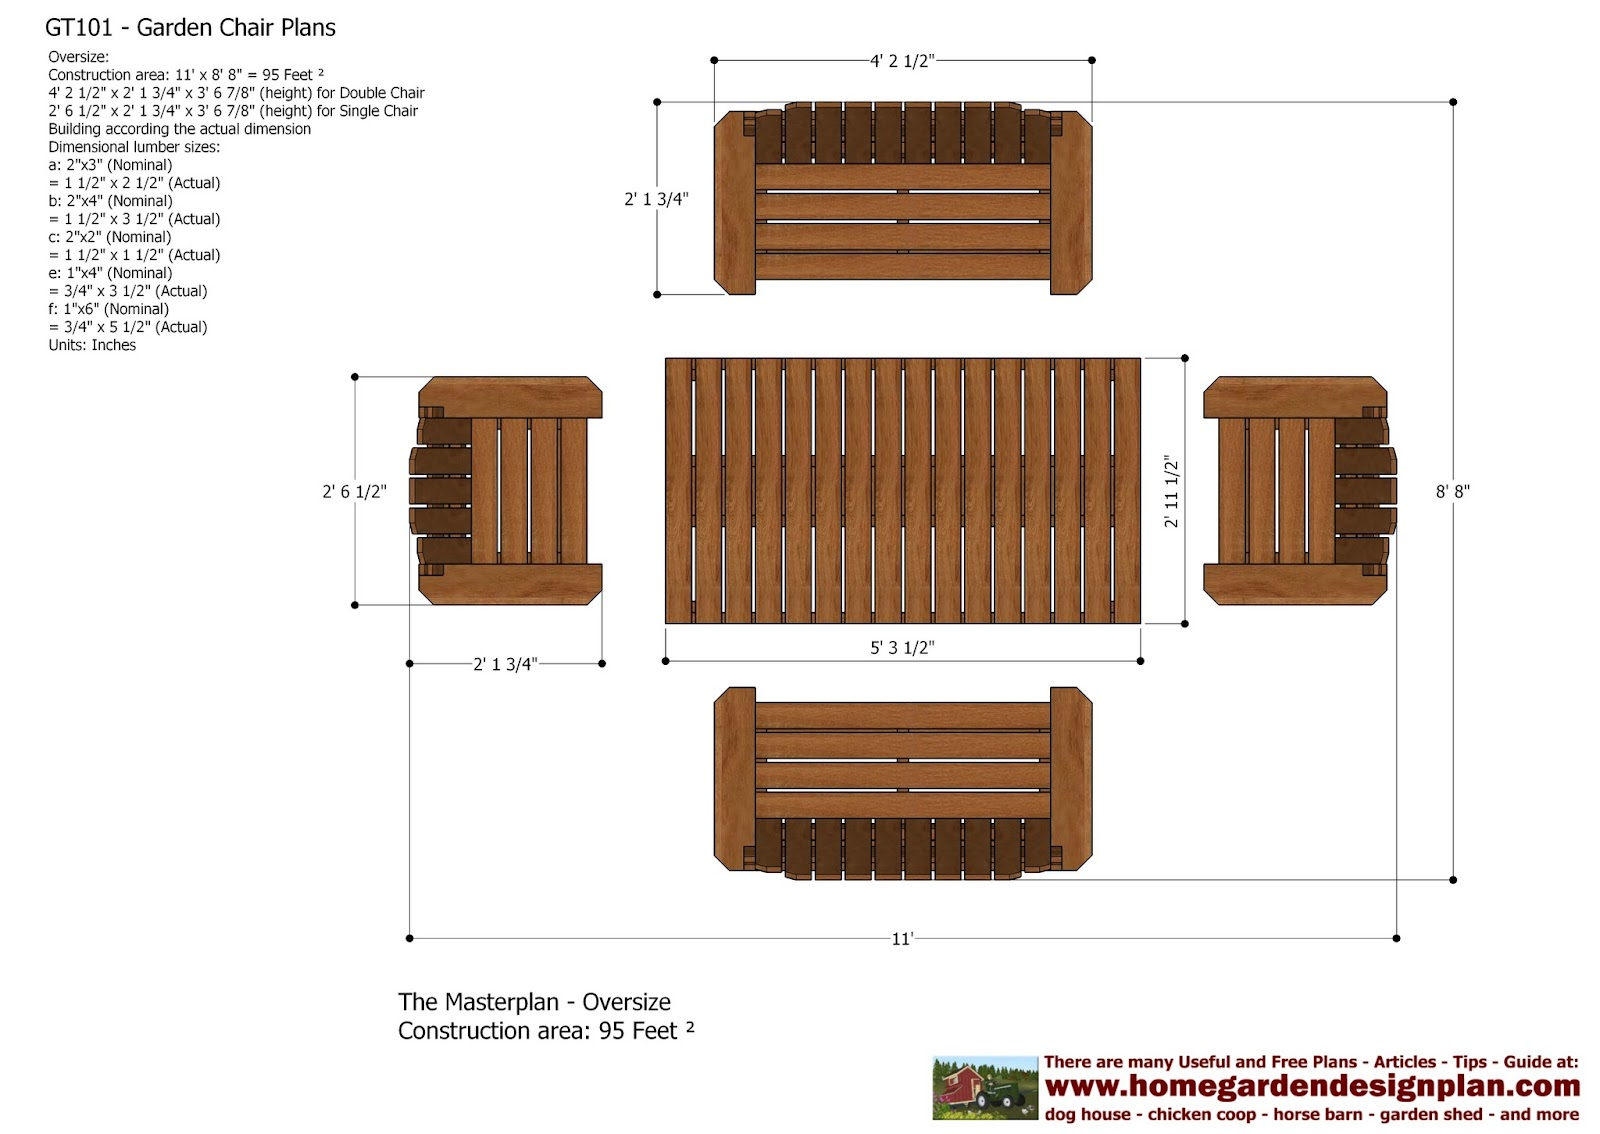 garden+teak+tables+plans+-+garden+teak+tables+design+ ...